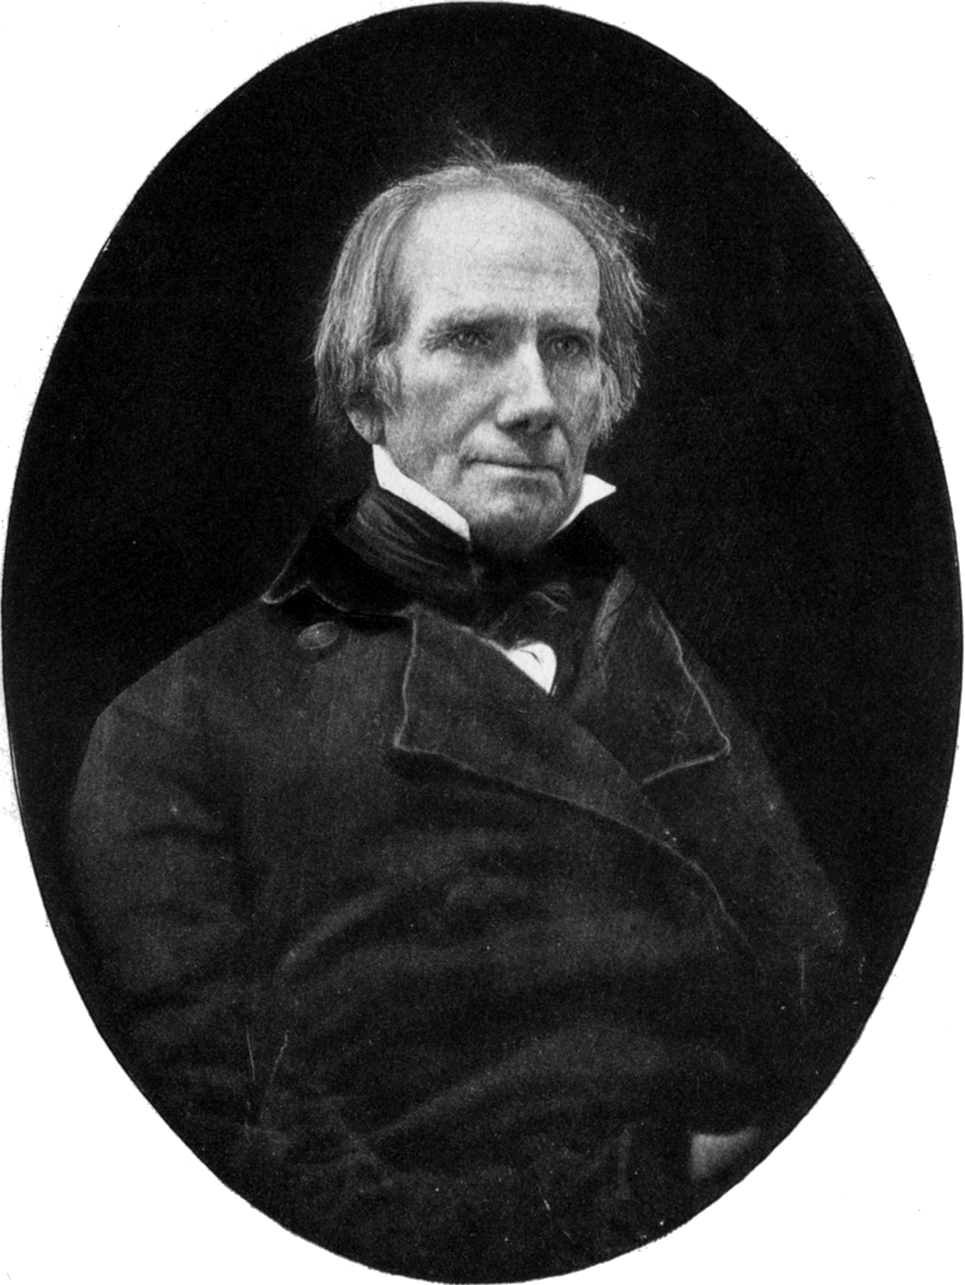 henry clay Best answer: henry clay (april 12, 1777 – june 29, 1852) was a leading american statesman and orator who represented kentucky in both the house of representatives and senate.